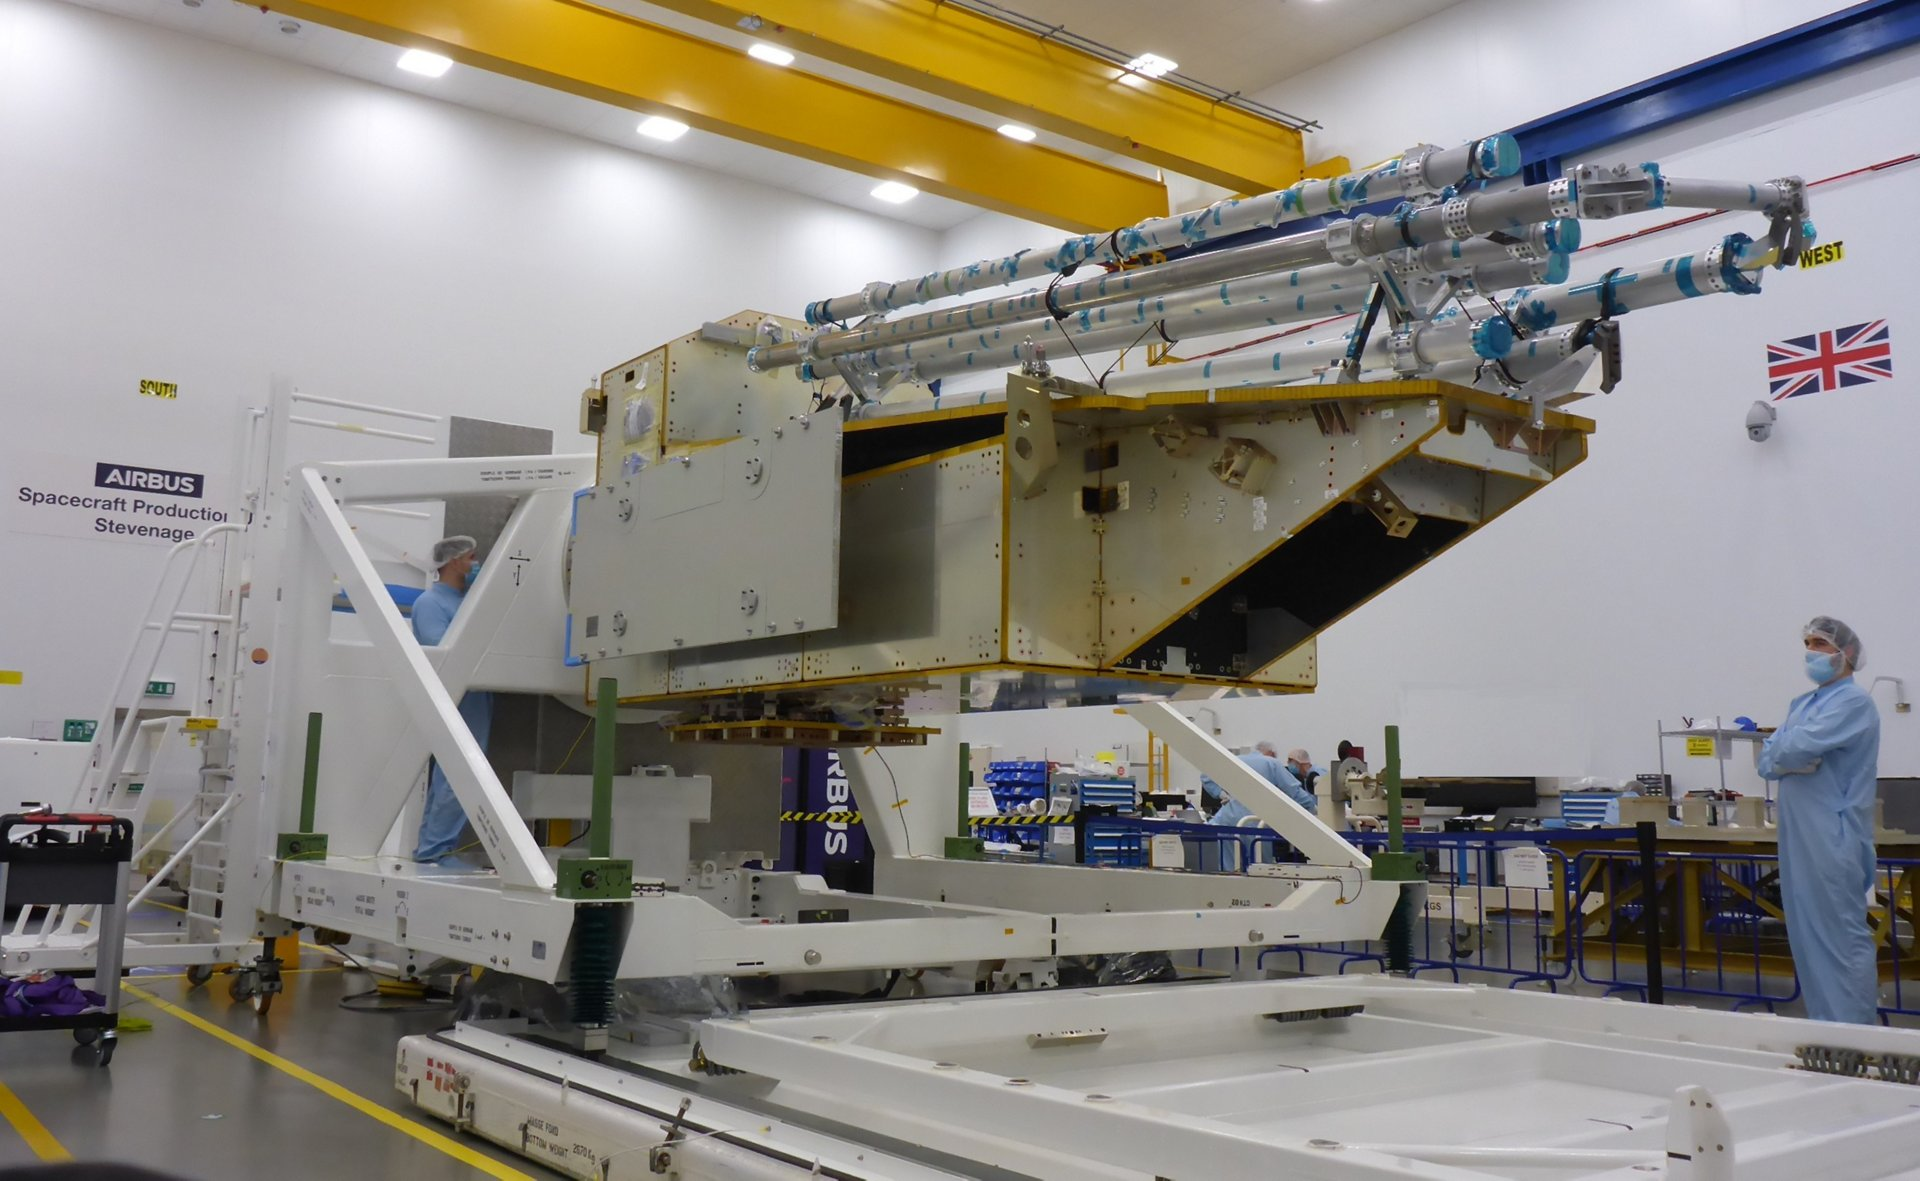 Biomass, the European Space Agency's (ESA) forest measuring satellite is taking shape at Airbus' site in Stevenage with the Structure Model Platform completed.